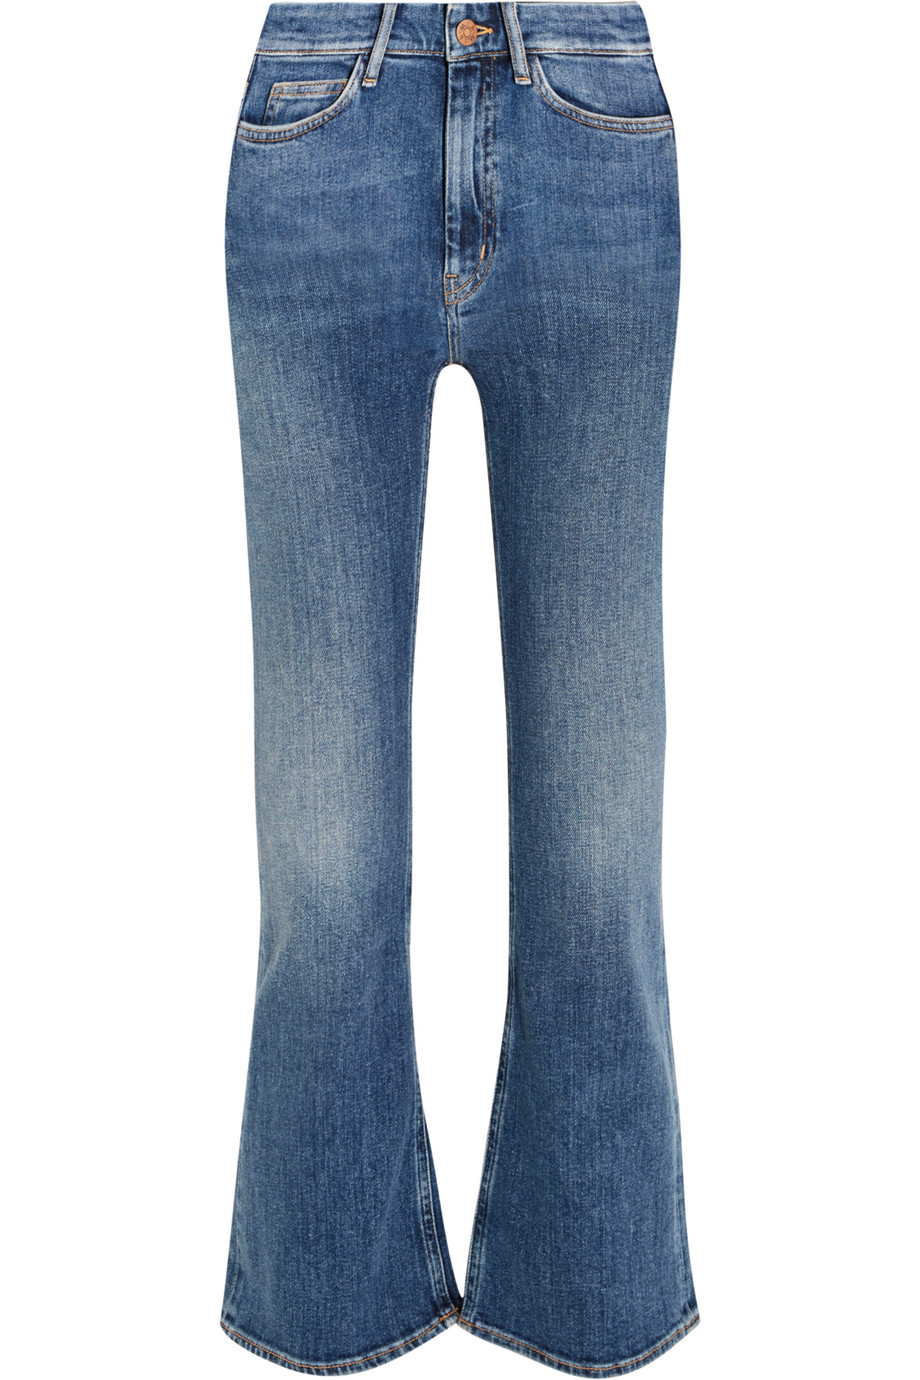 Mih Jeans Marty Cropped High-Rise Flared Jeans, Mid Denim, Women's, Size: 27